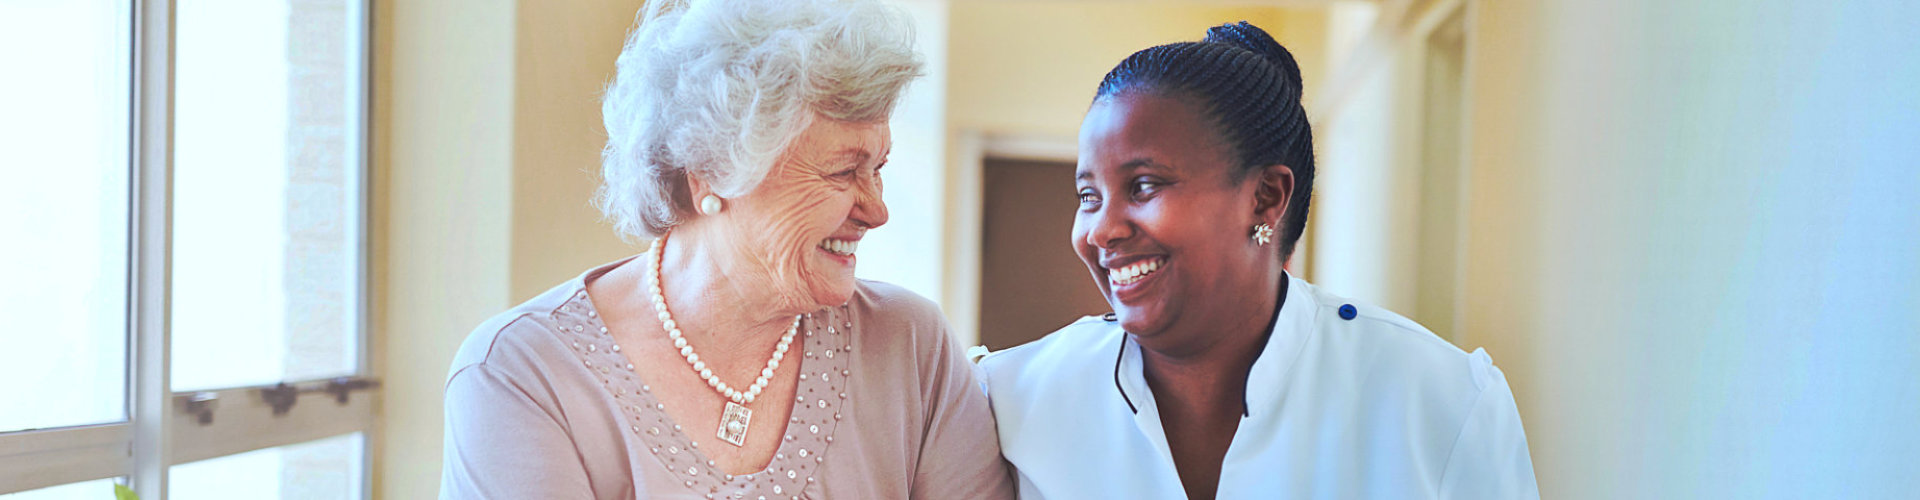 senior woman and nurse smiling